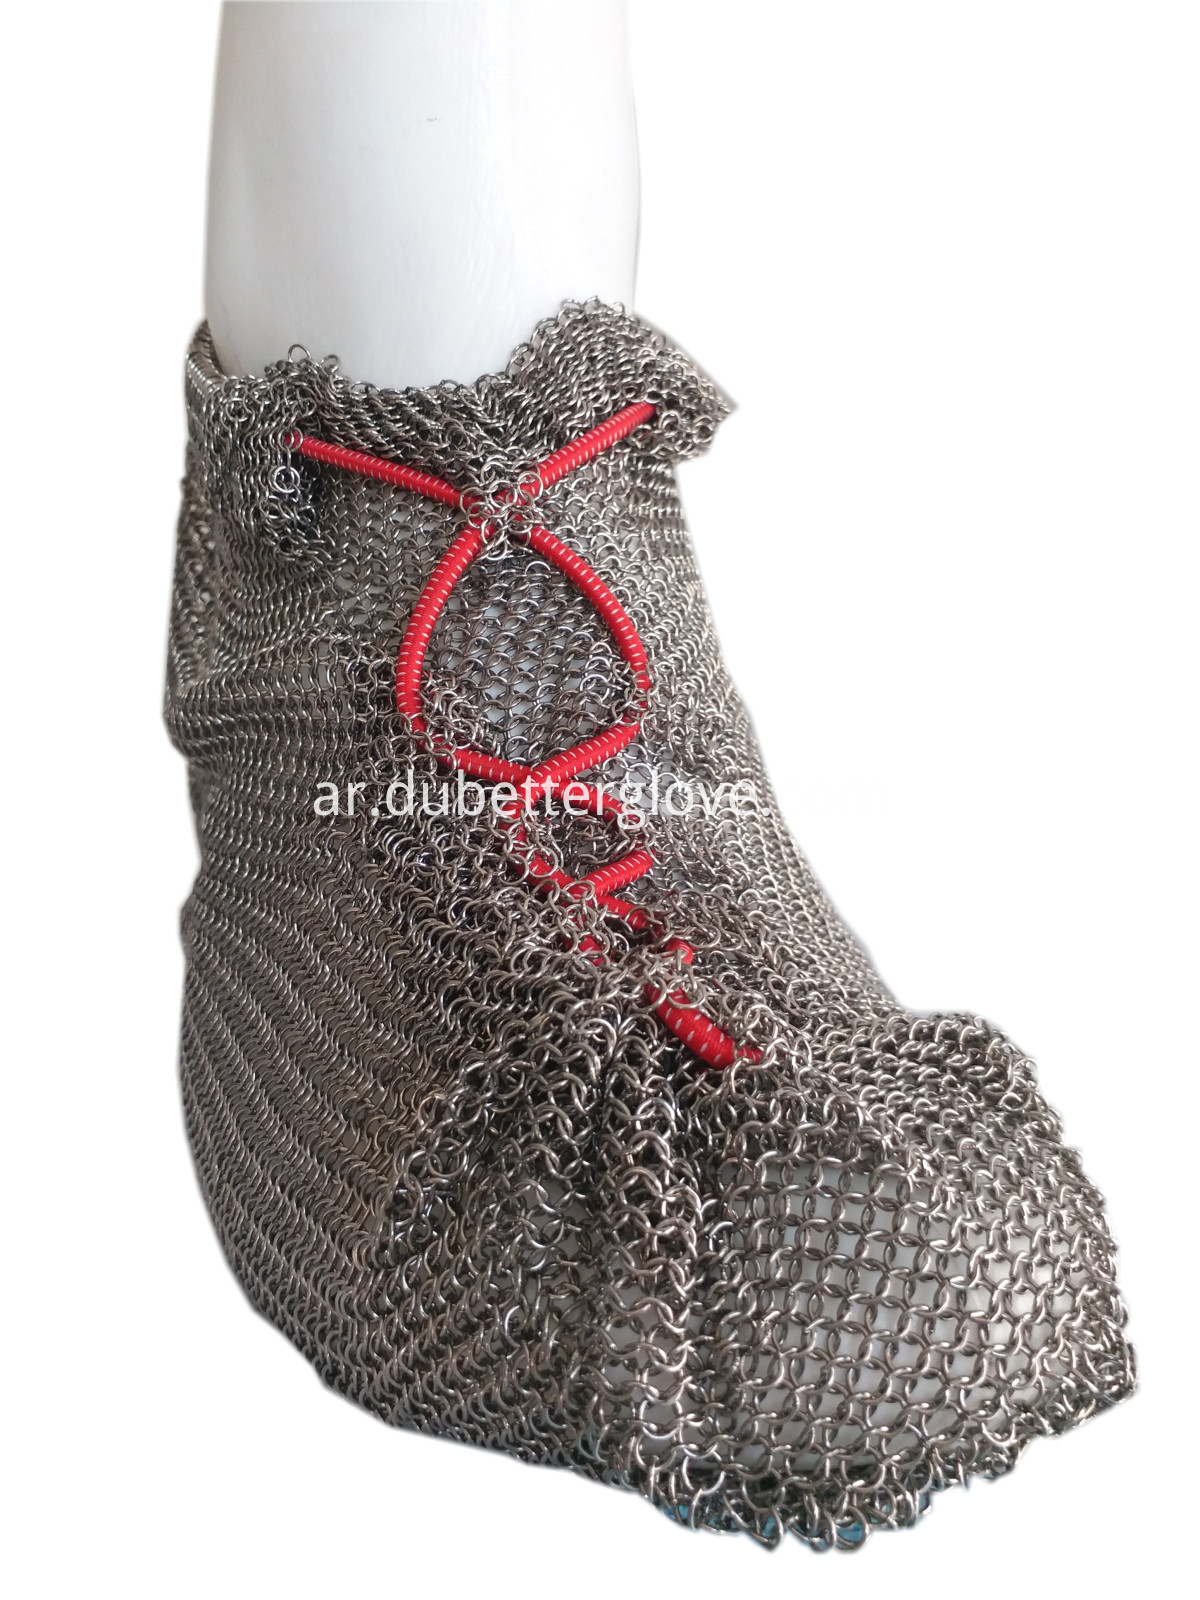 Dubetter chain mail mesh shoes